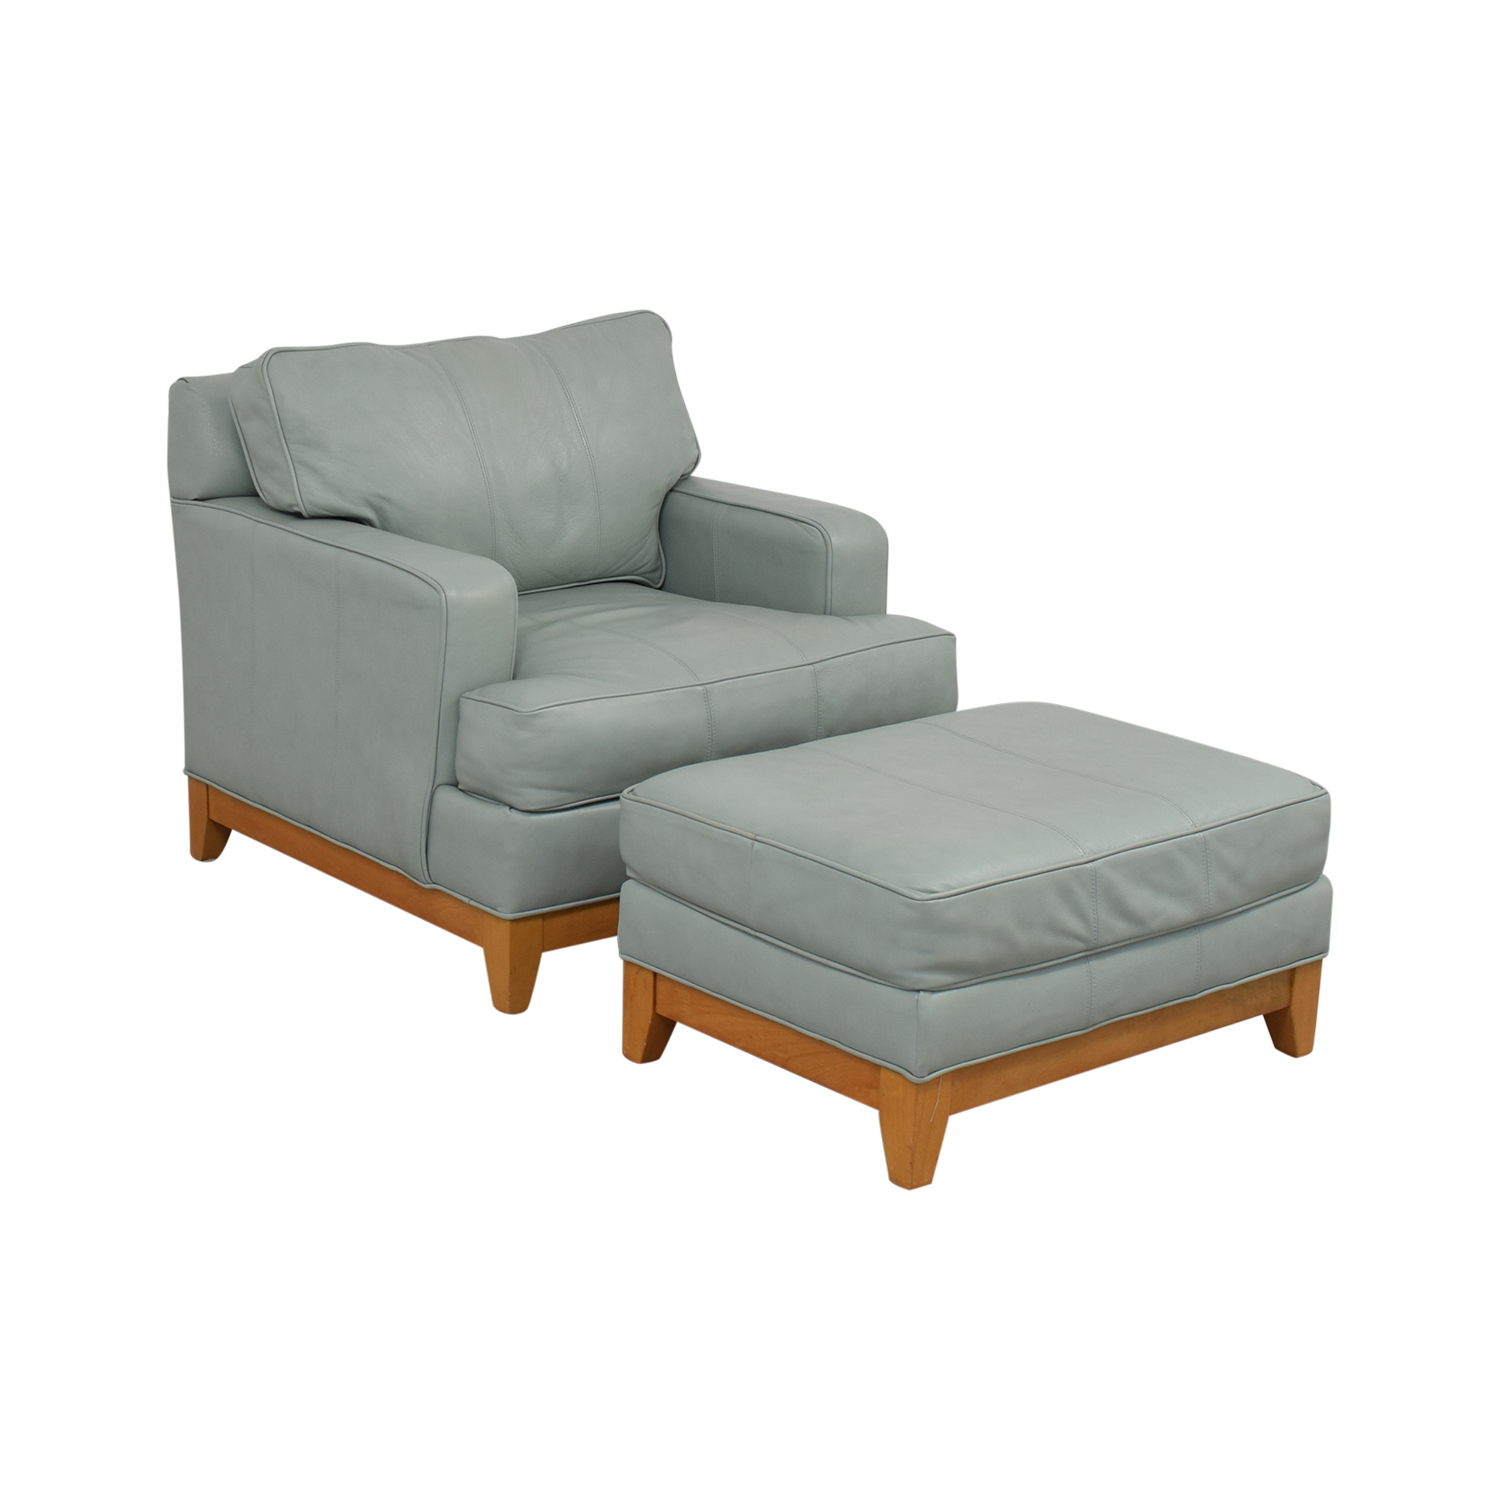 83 Off Ethan Allen Ethan Allen Oversized Blue Accent Chair And Ottoman Chairs